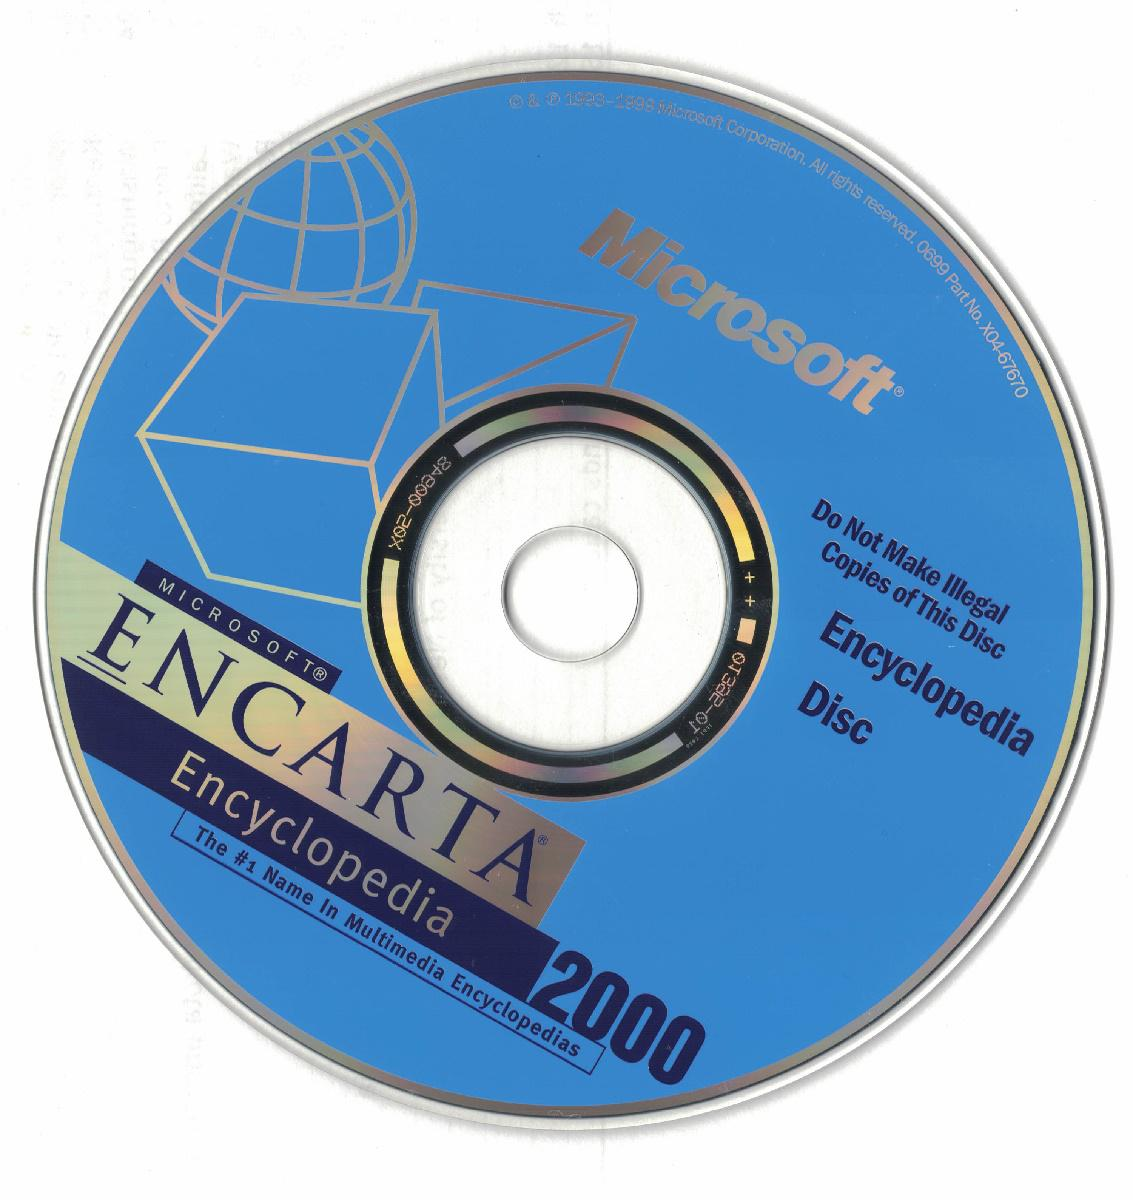 View topic - (Help create) The Definitive List of Encarta